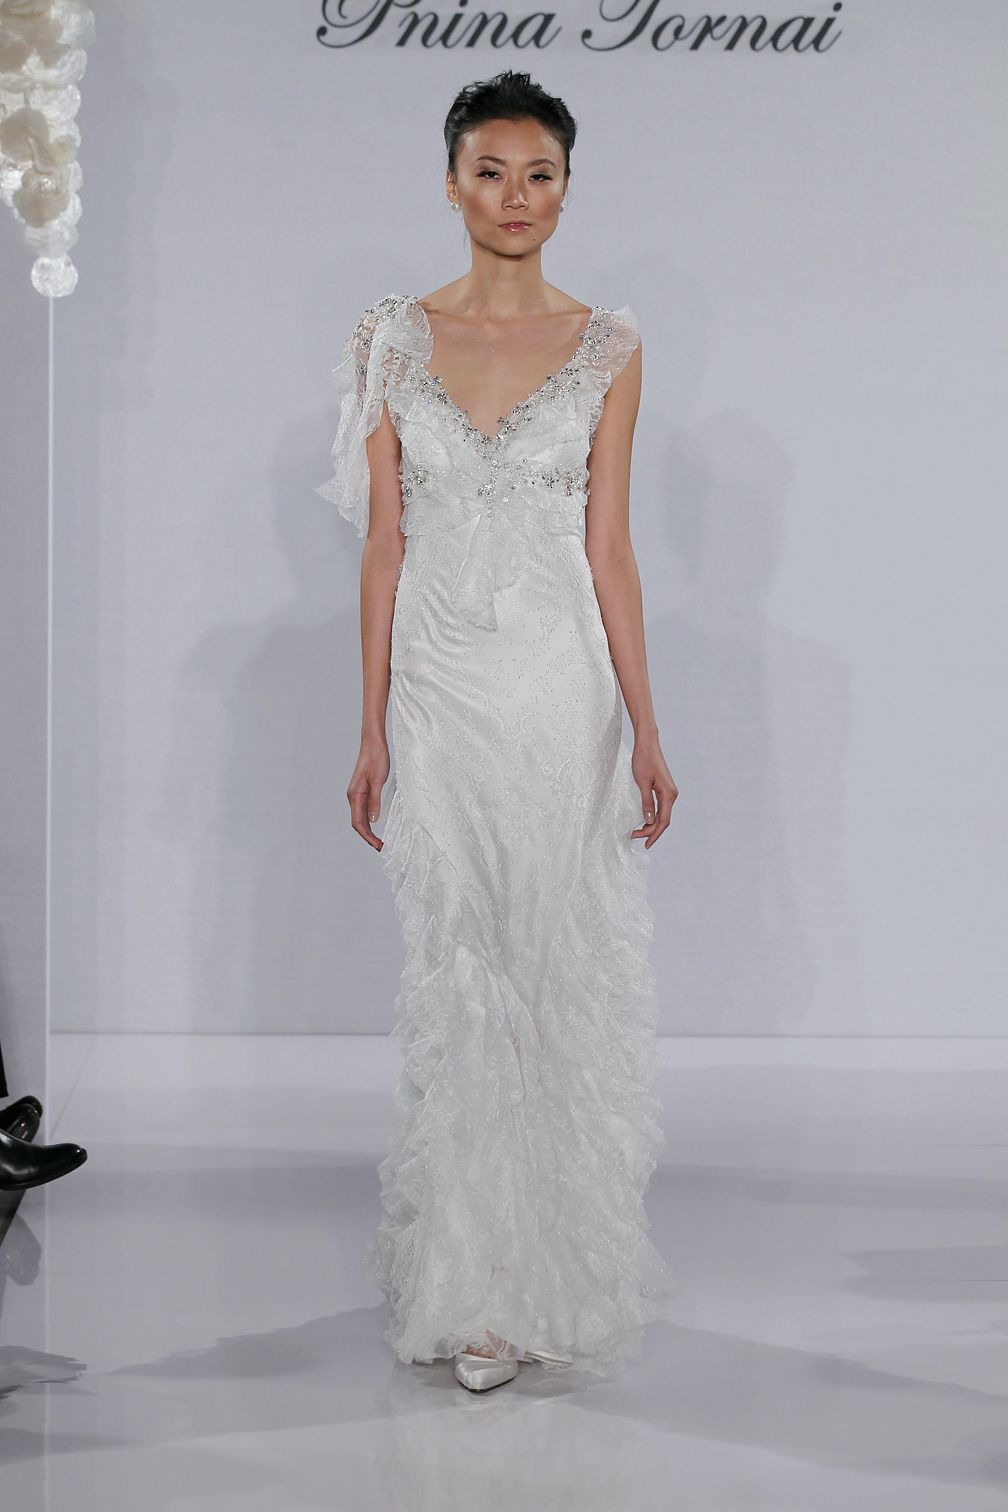 Bridal gowns pnina tornai sheath wedding dress with vneck neckline